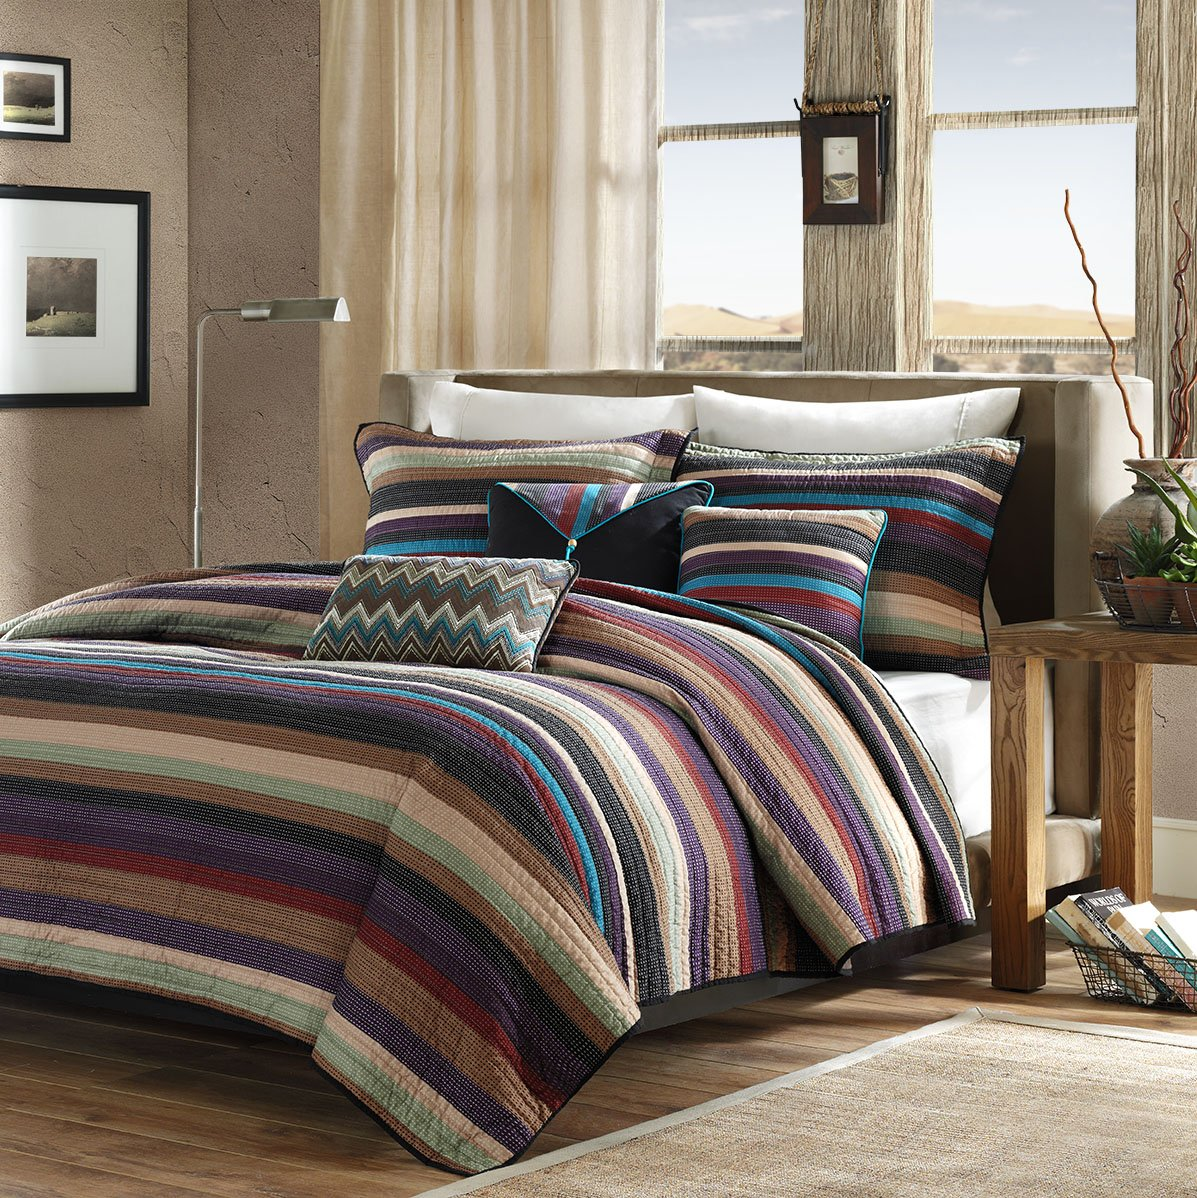 Madison Park Yosemite Full/Queen Size Quilt Bedding Set - Purple Yellow Teal, Striped – 6 Piece Bedding Quilt Coverlets – Cotton Bed Quilts Quilted Coverlet